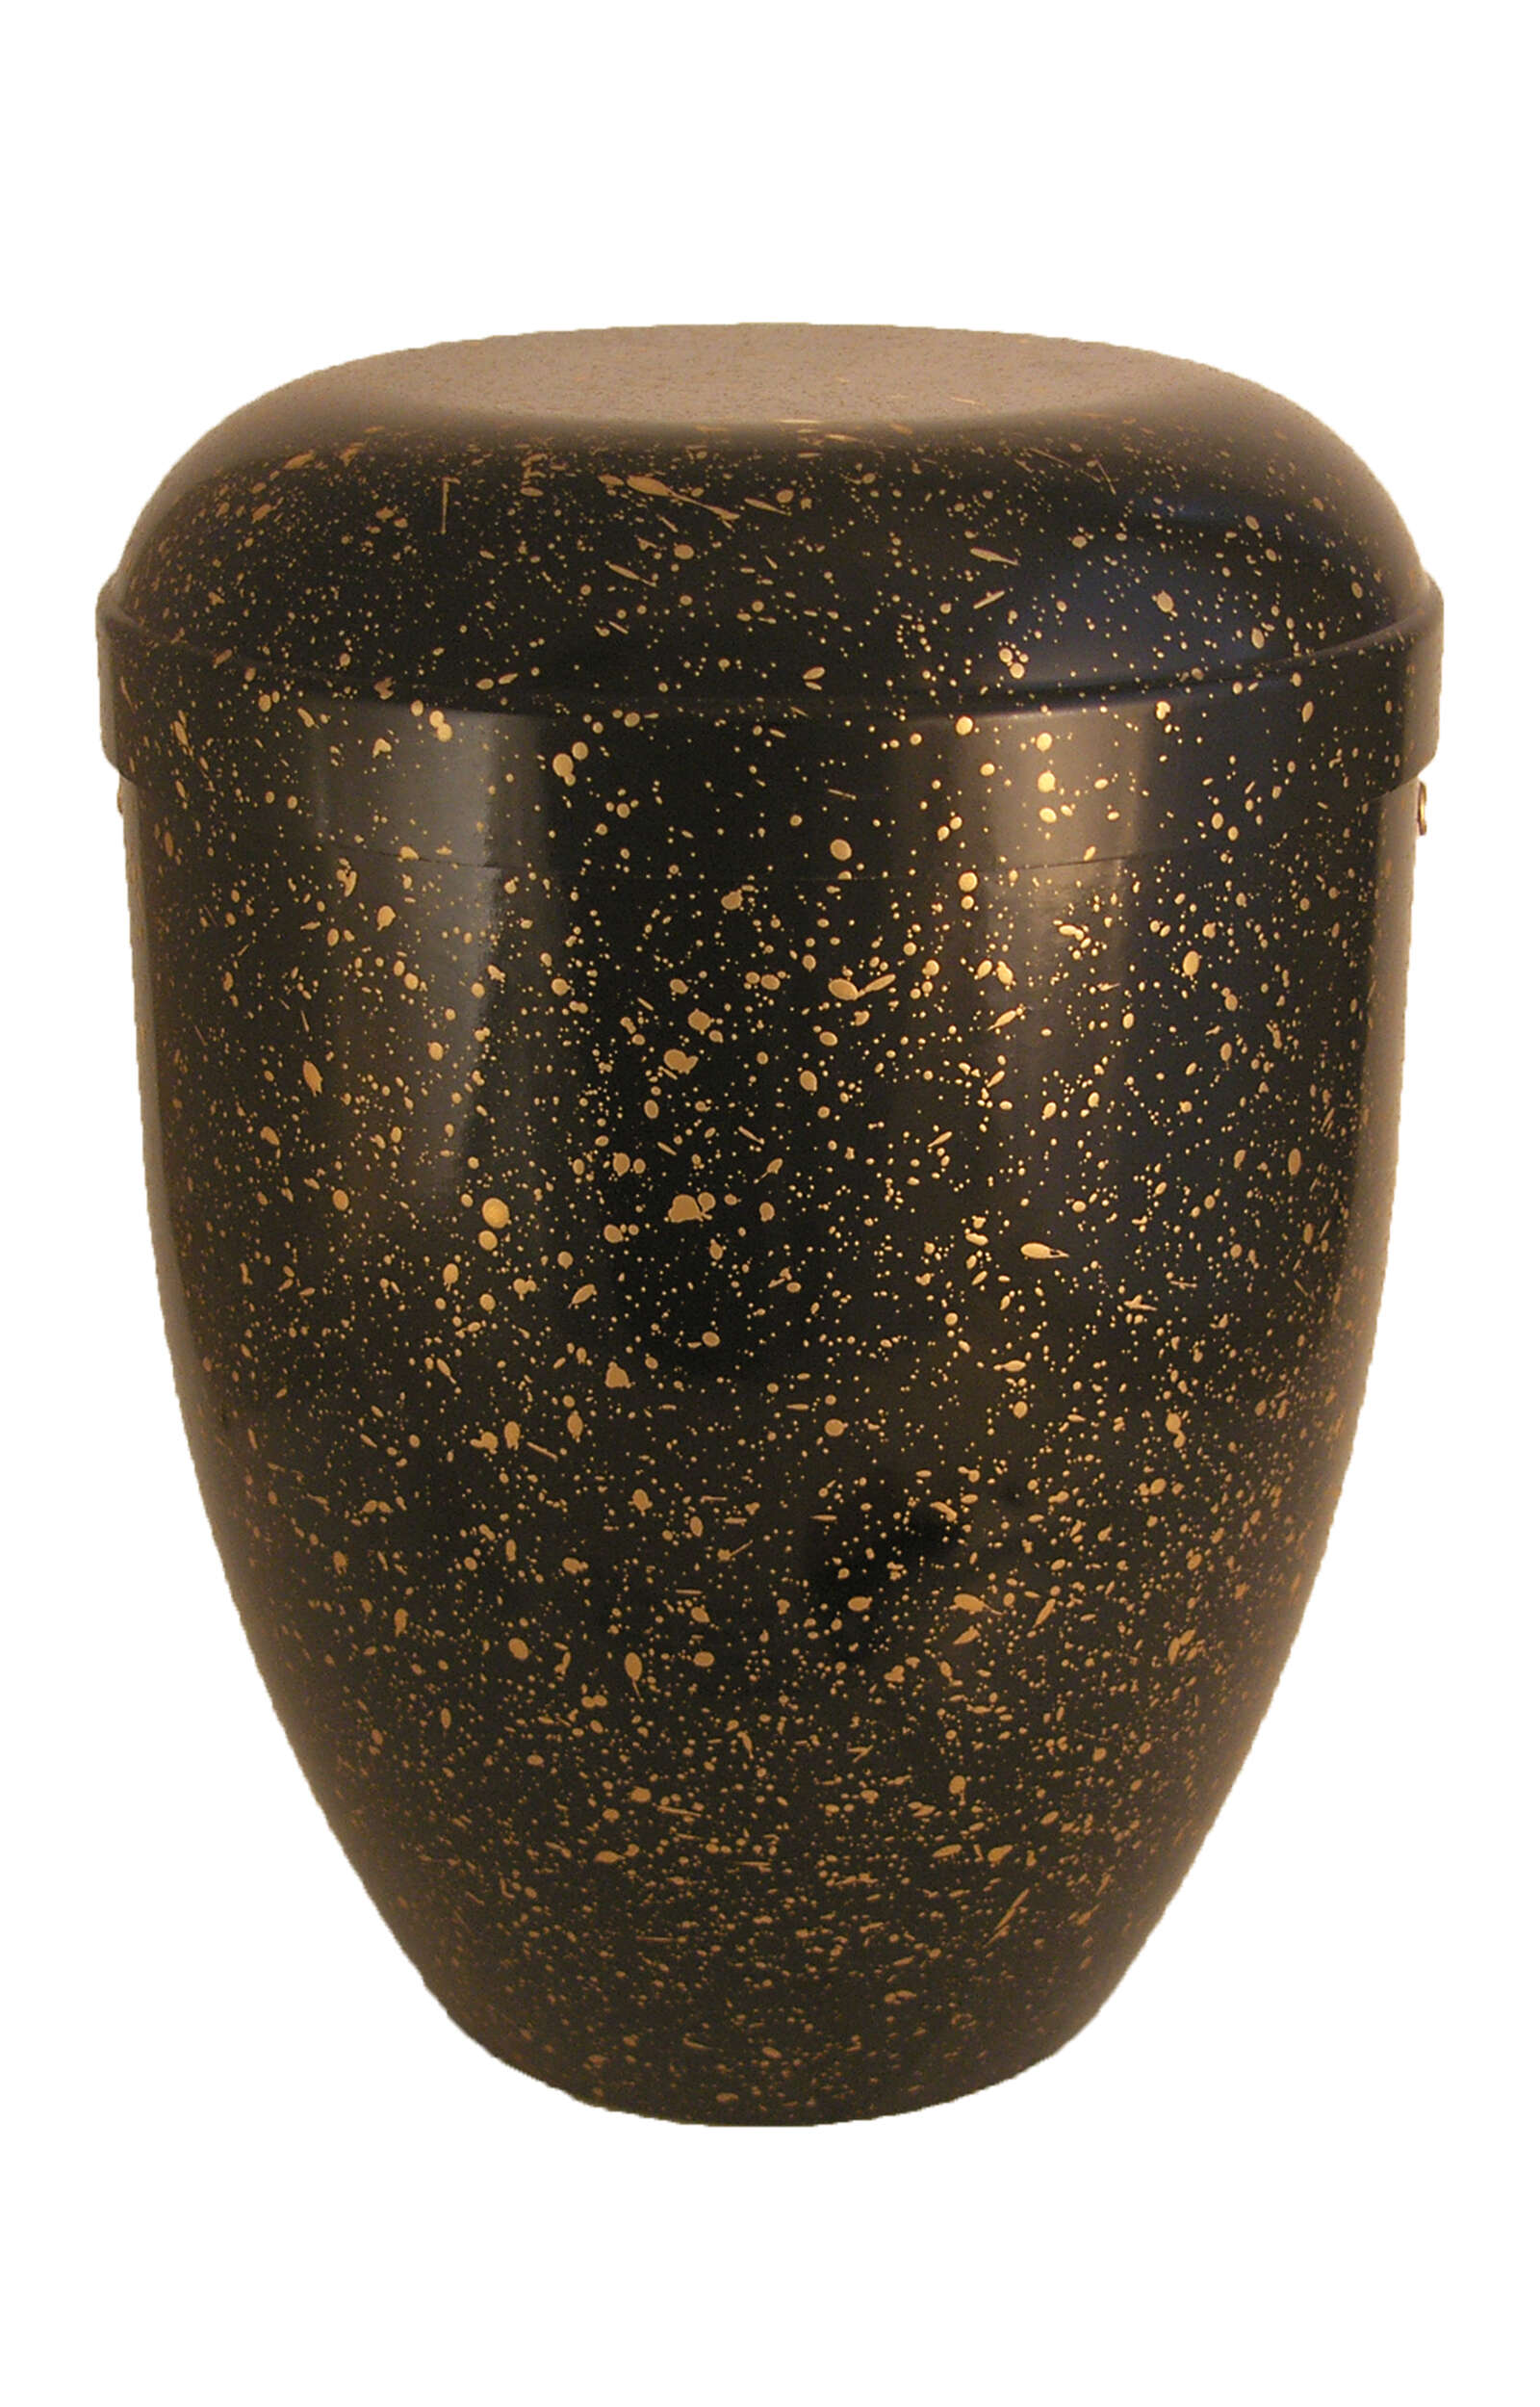 en BSG3620 funeral urns for human ashes biodegradable urn black gold mottled Glossy